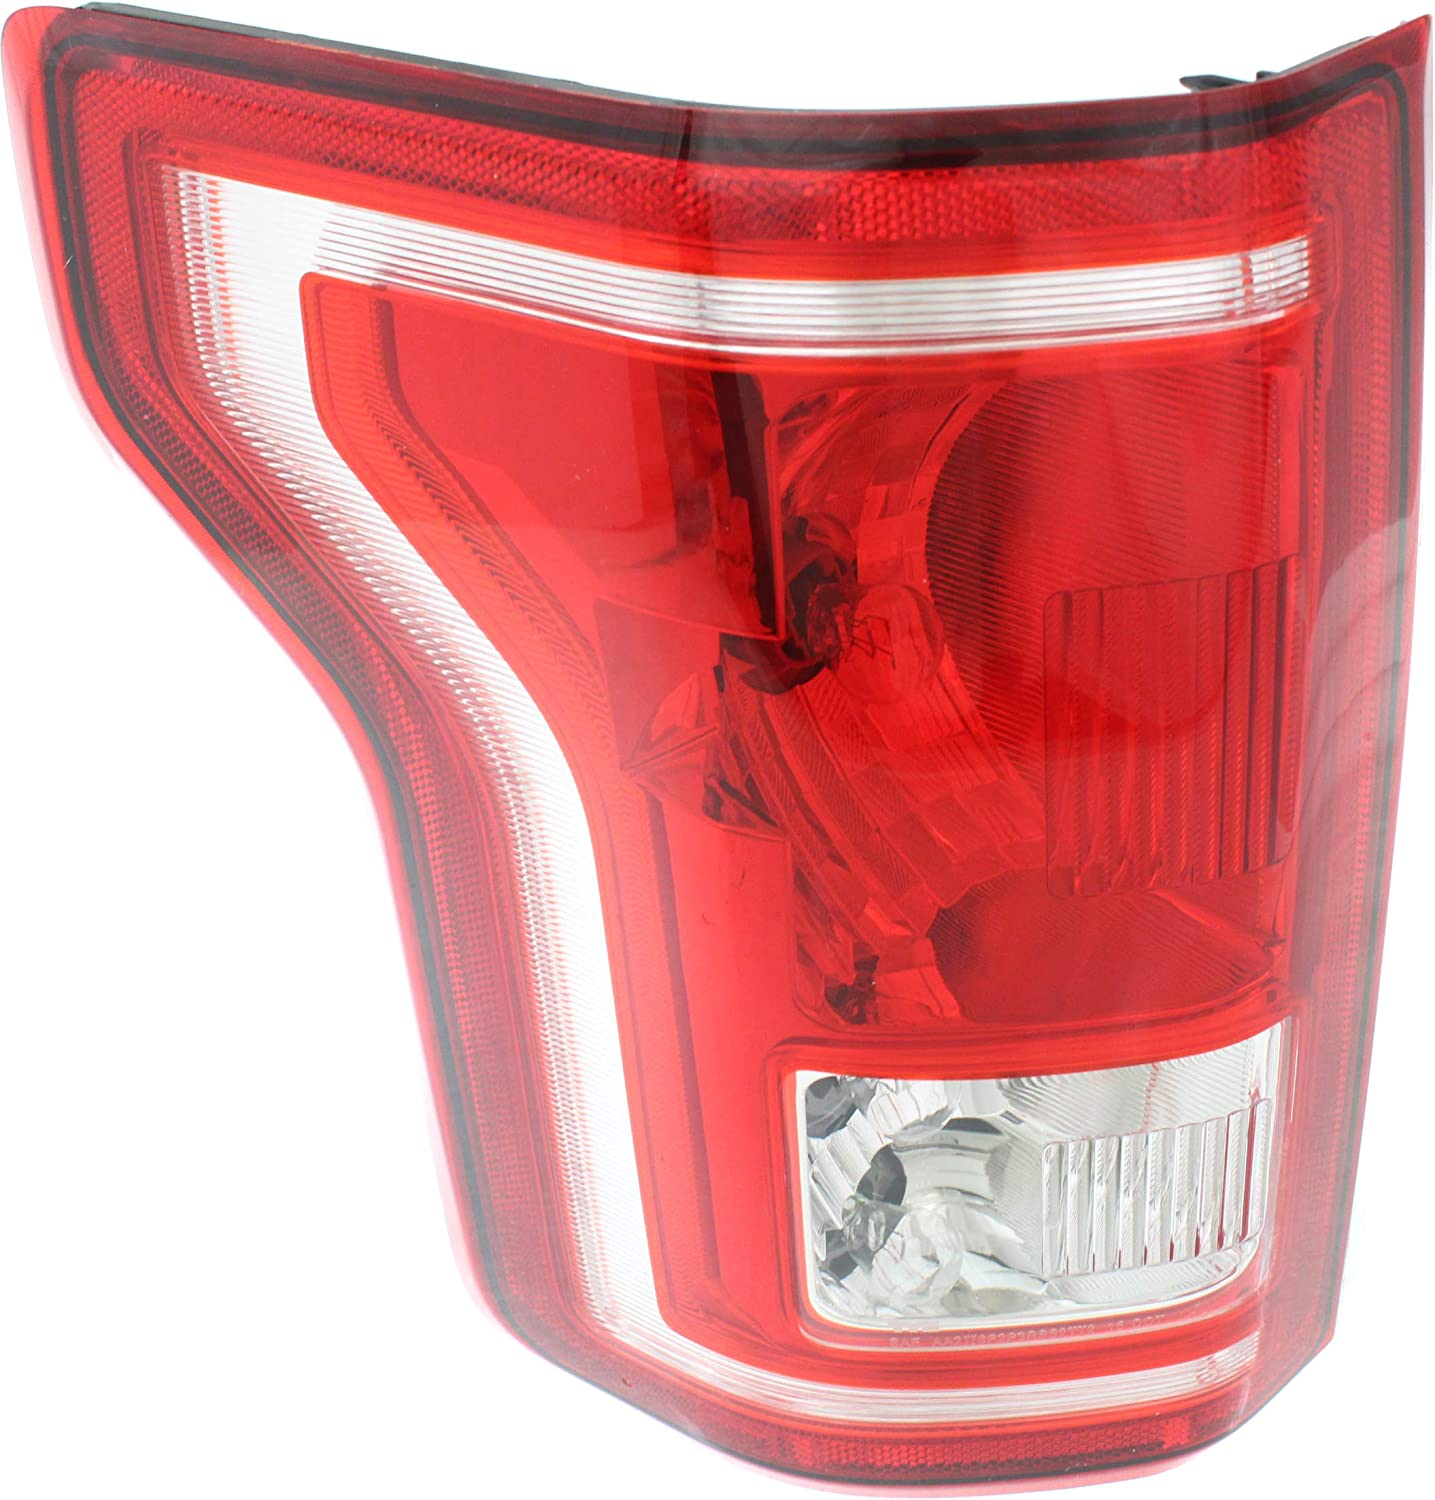 Garage-Pro Tail Light for FORD お値打ち価格で Halog F-150 2015-2017 至高 Assembly LH